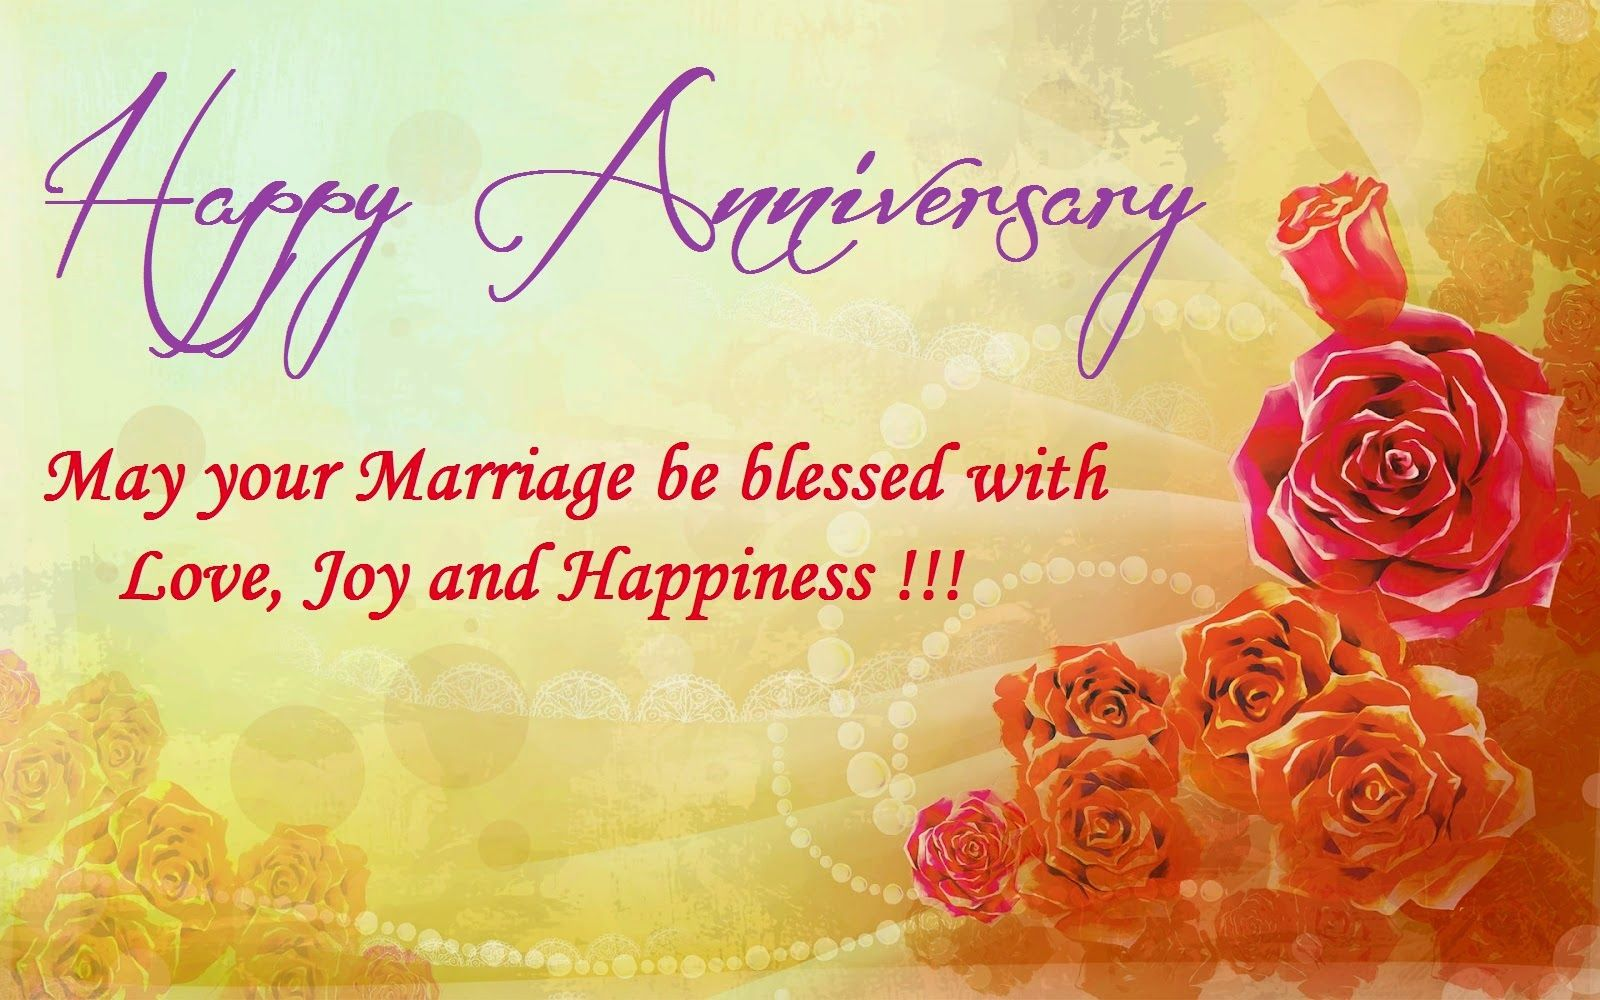 Happy anniversary images free download with wishes